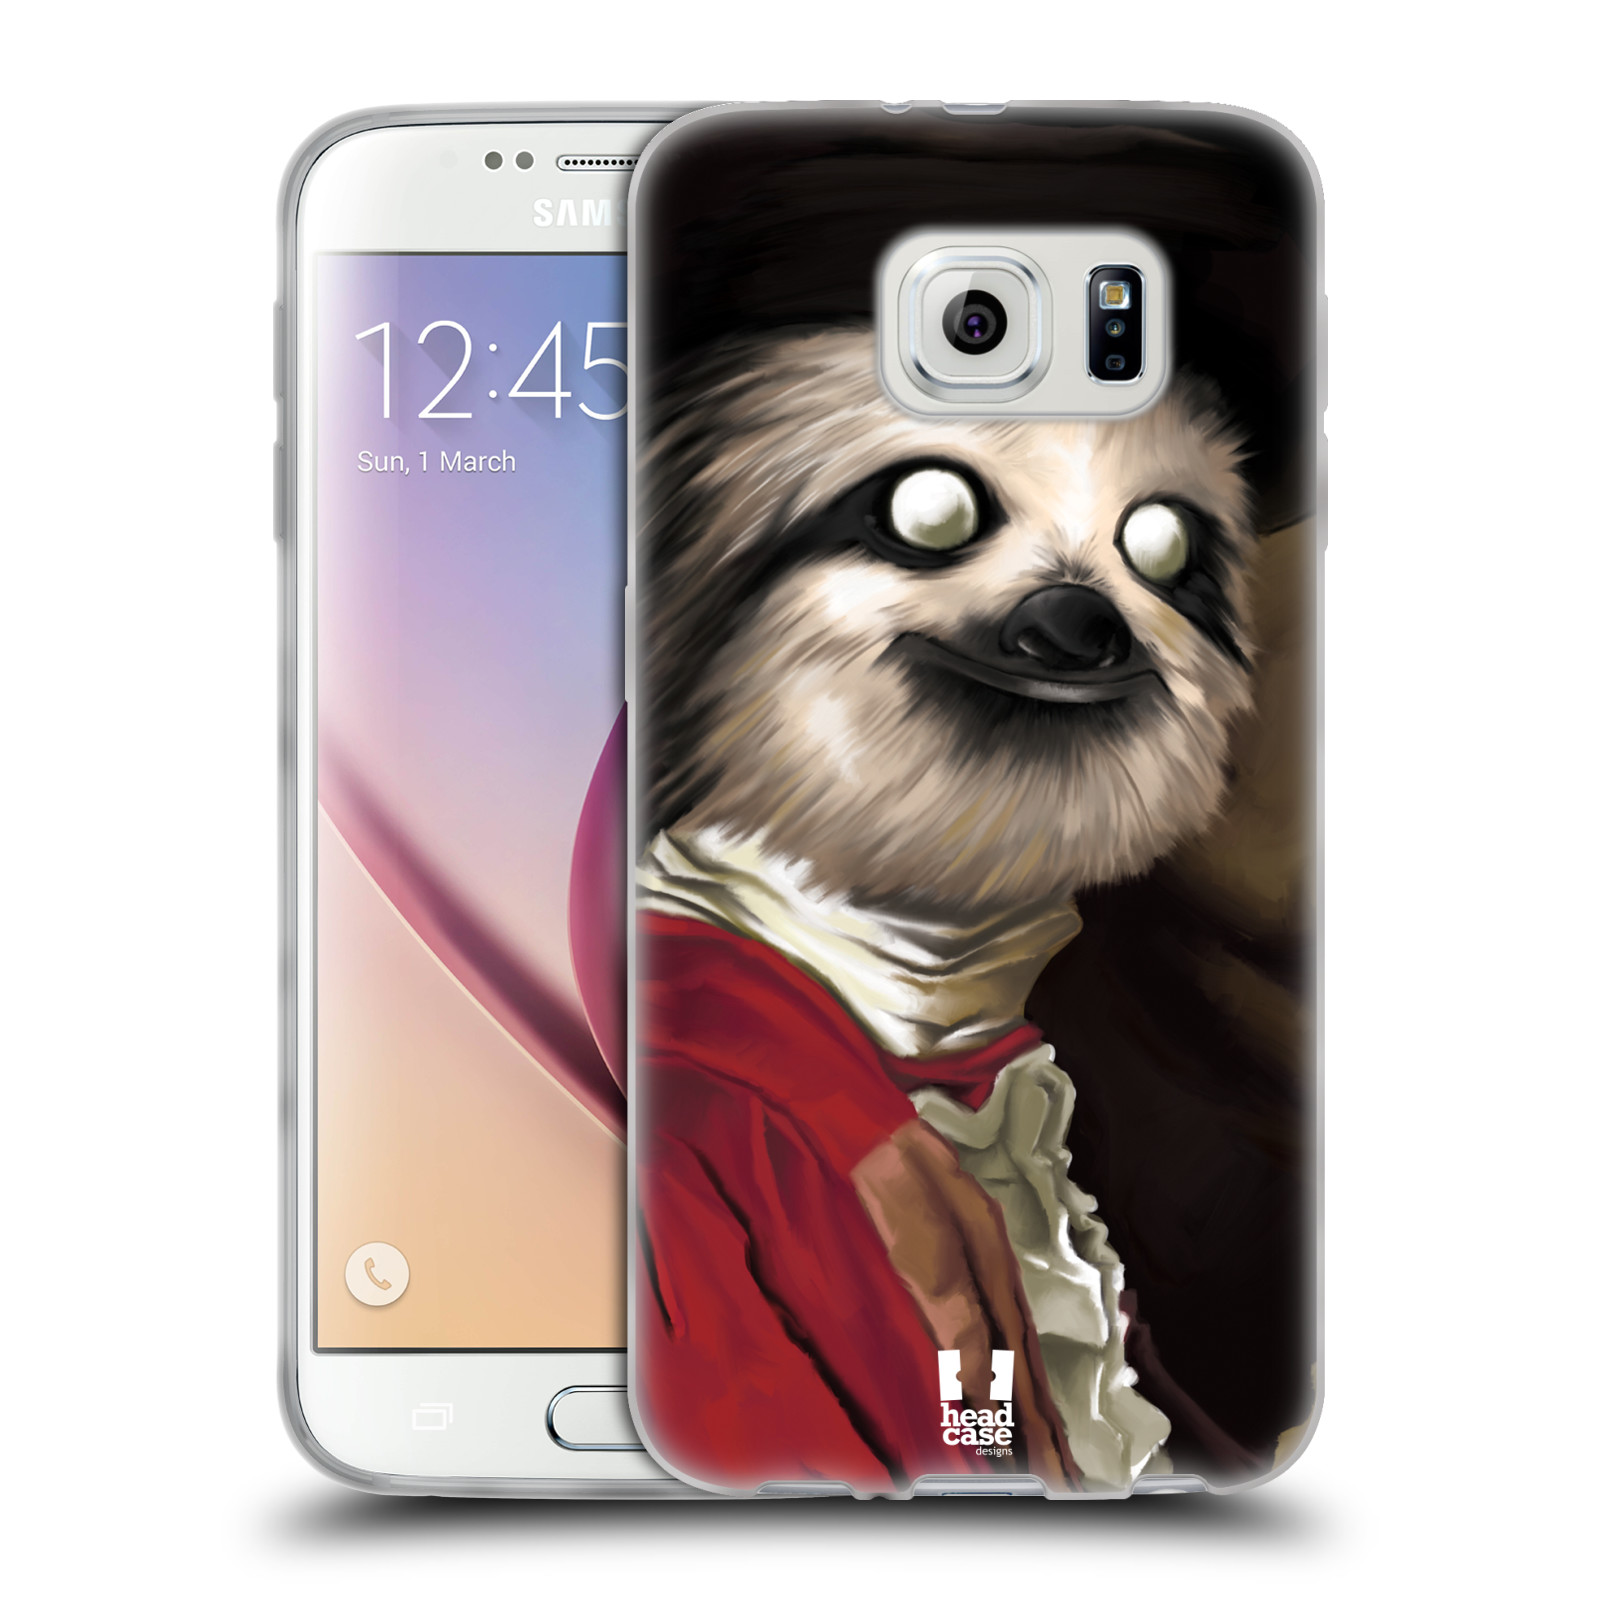 HEAD-CASE-DESIGNS-SPOOF-COLLECTION-SOFT-GEL-CASE-FOR-SAMSUNG-PHONES-1